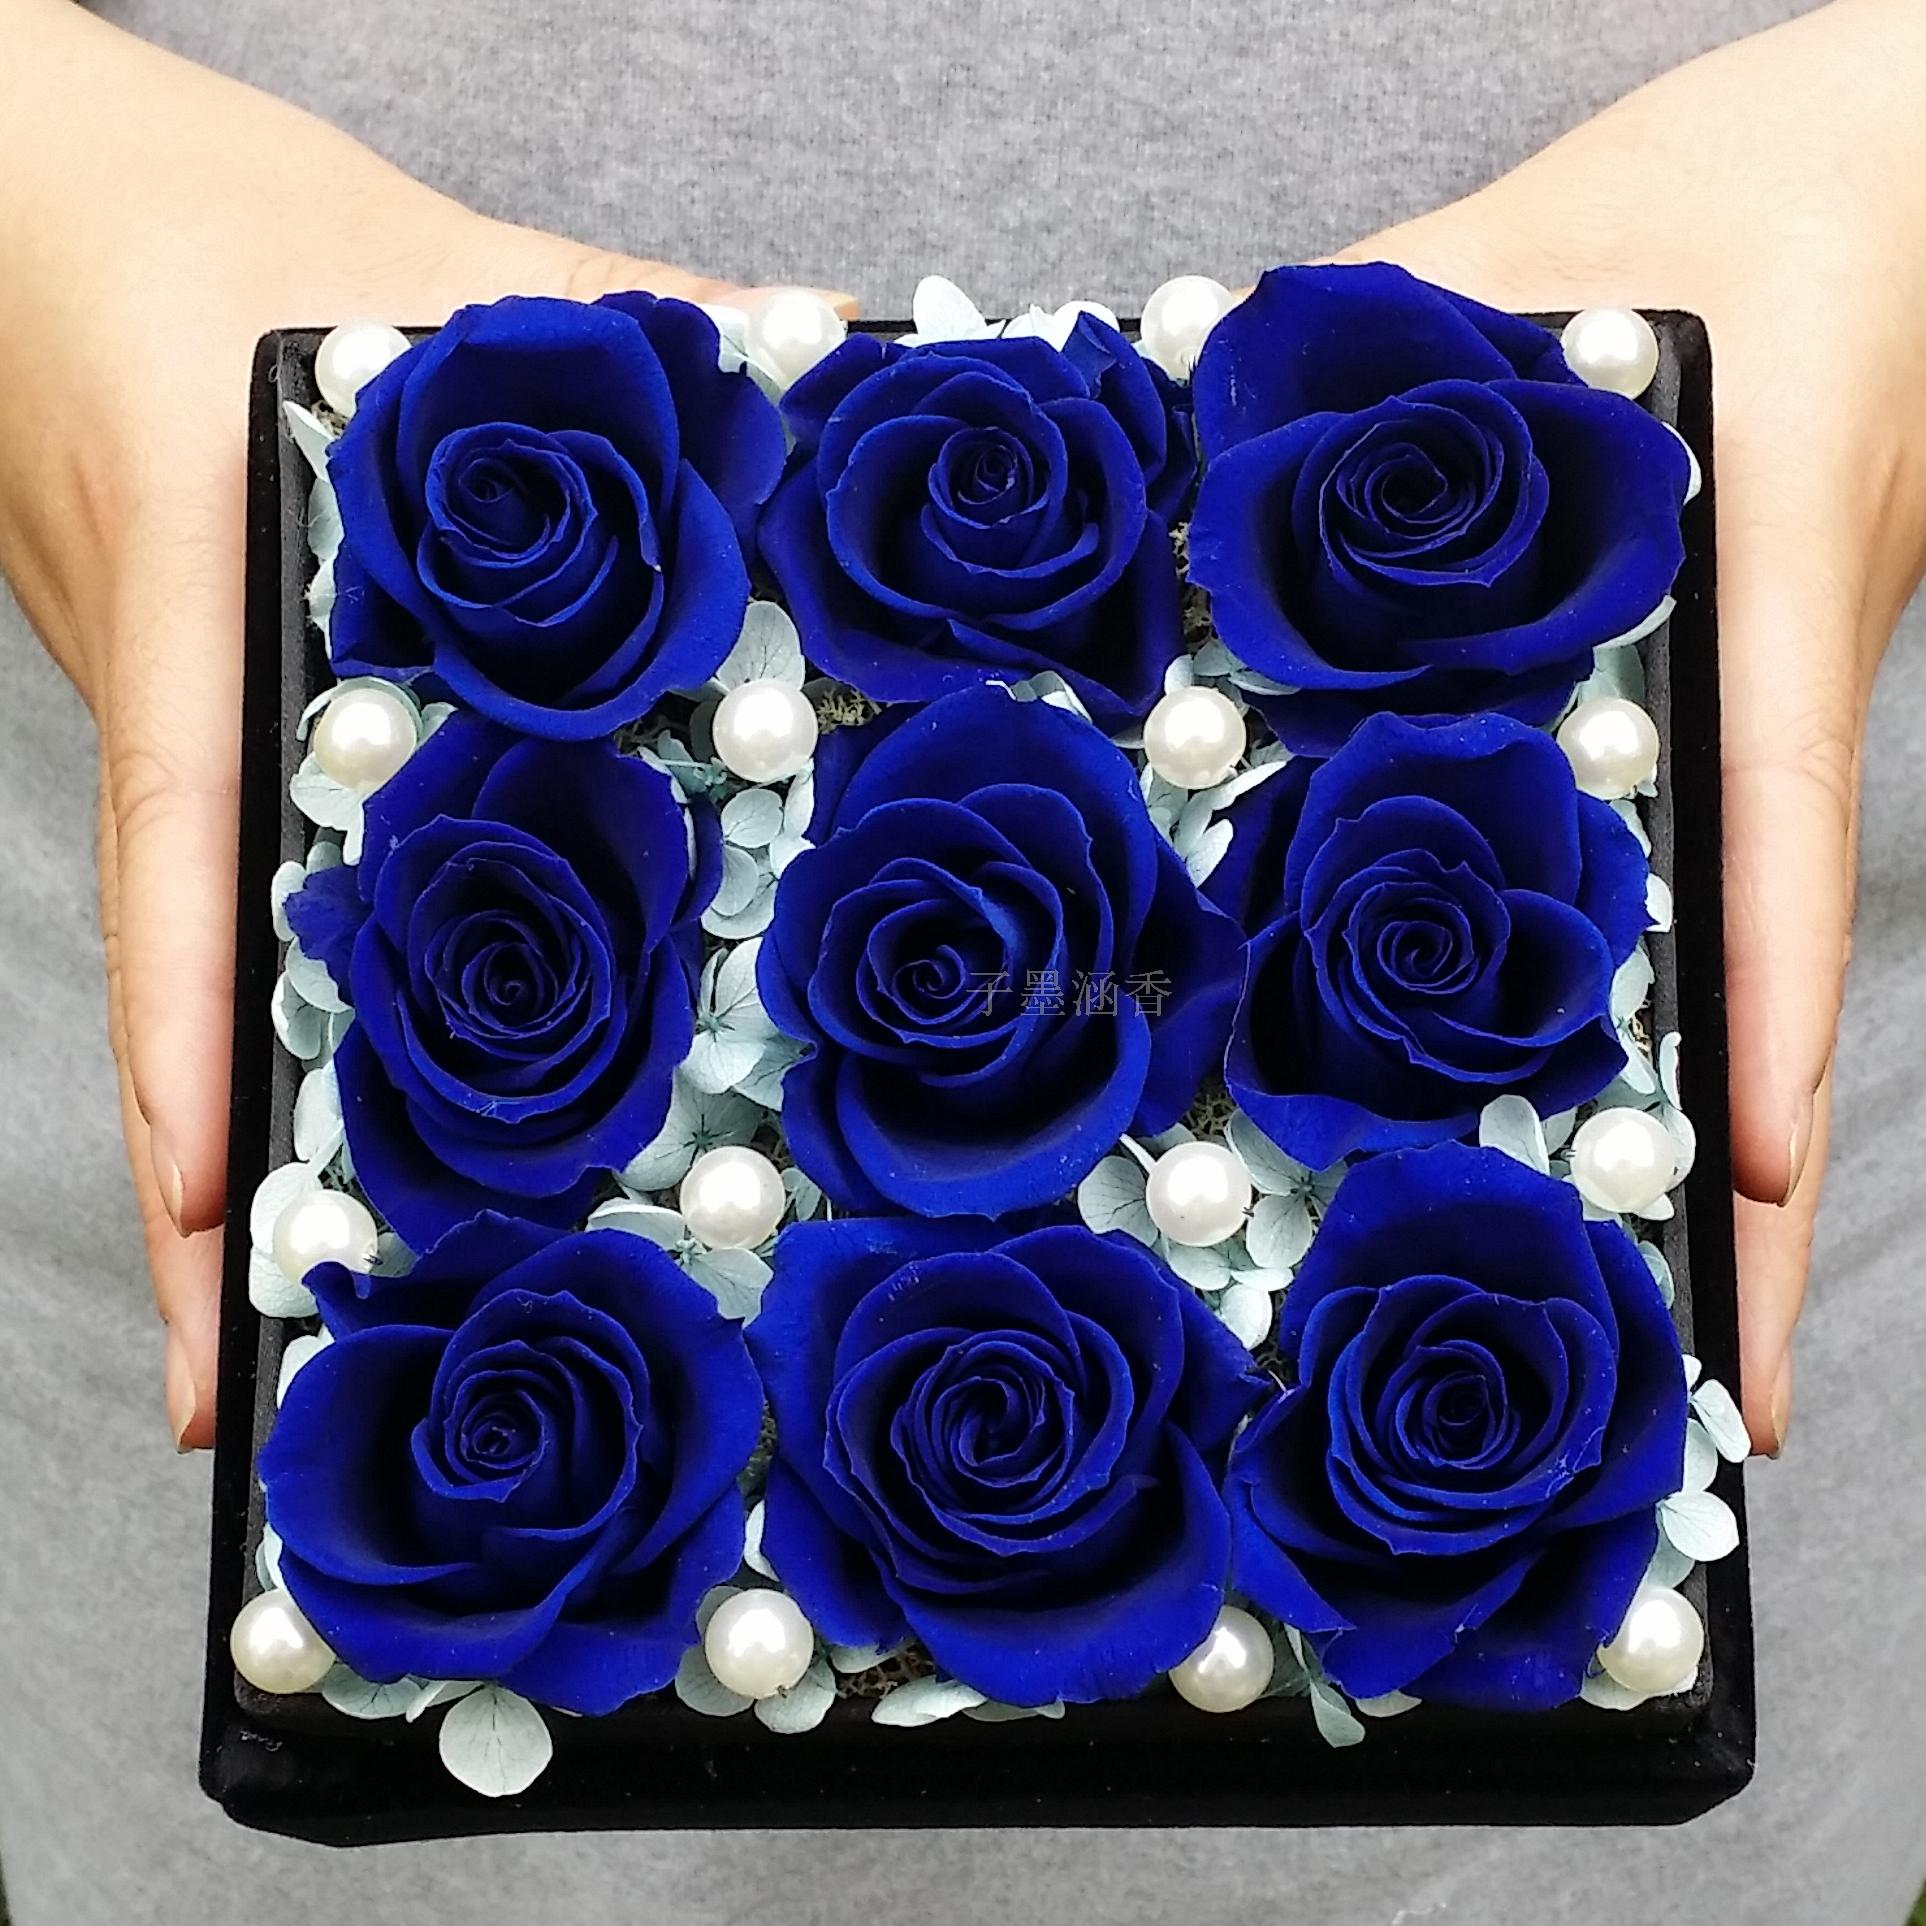 Buy 9 Bluelover Flower Preservation Imports Rose Preserved Boxes Gift Birthday Bless Courtship Free Shipping In Cheap